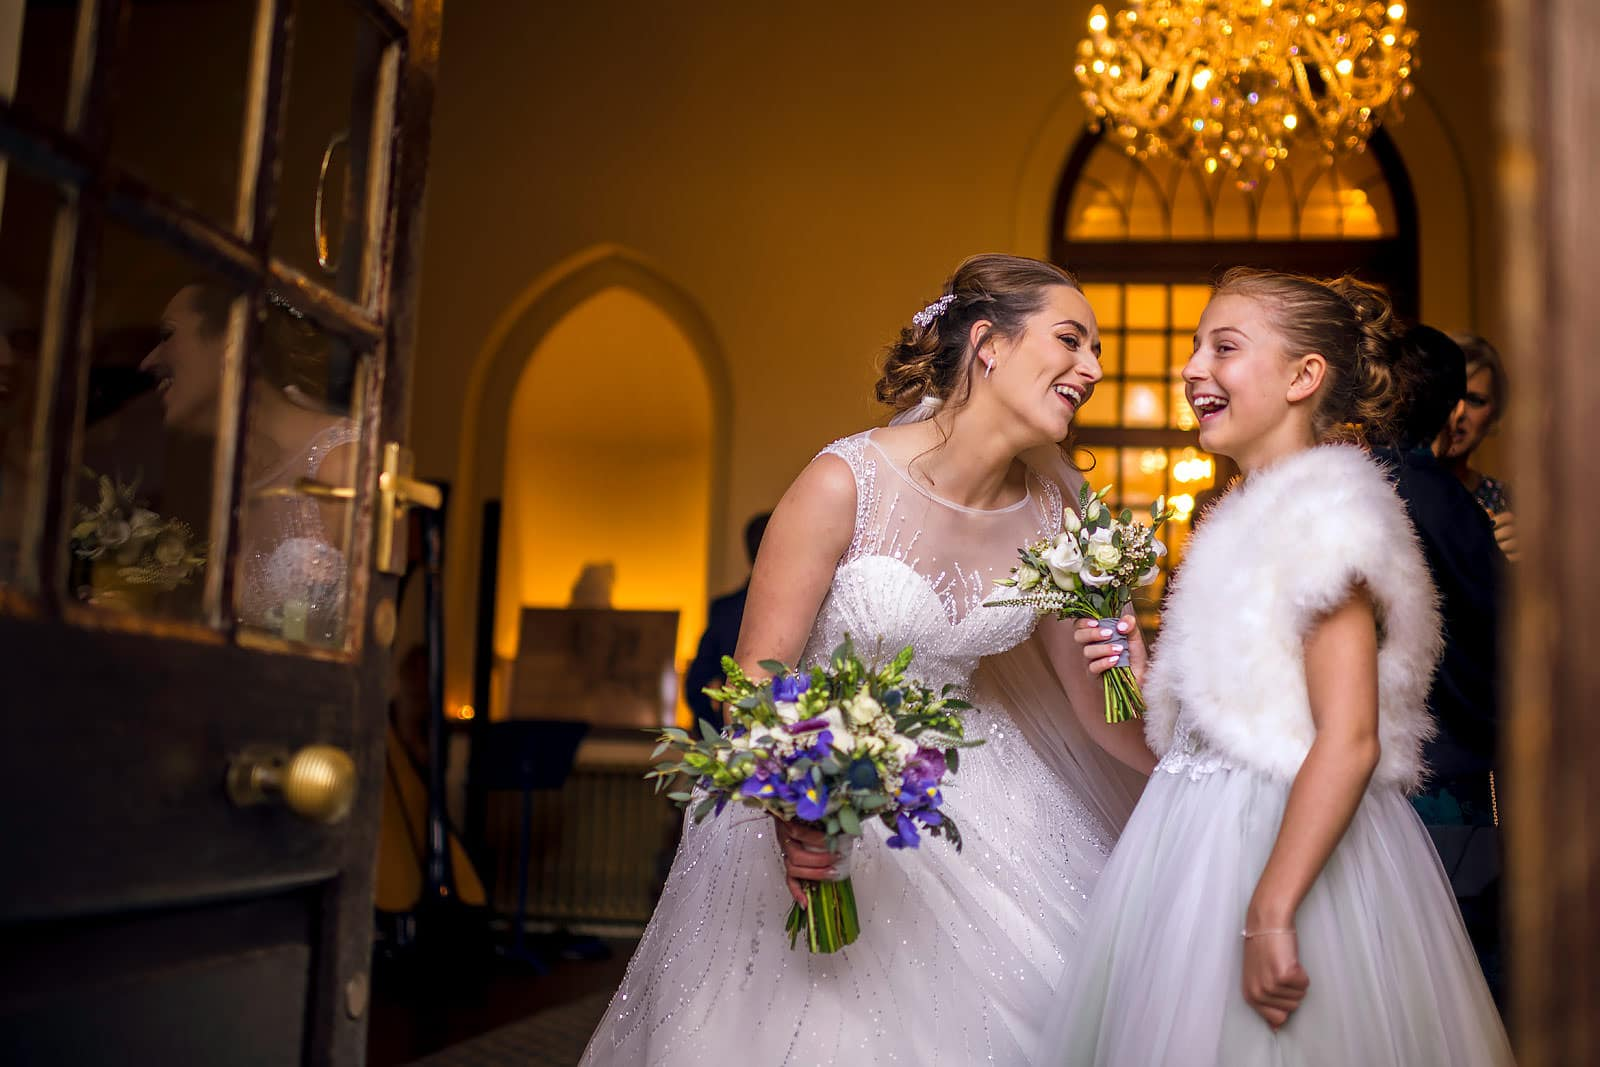 Bride and her daughter share a moment